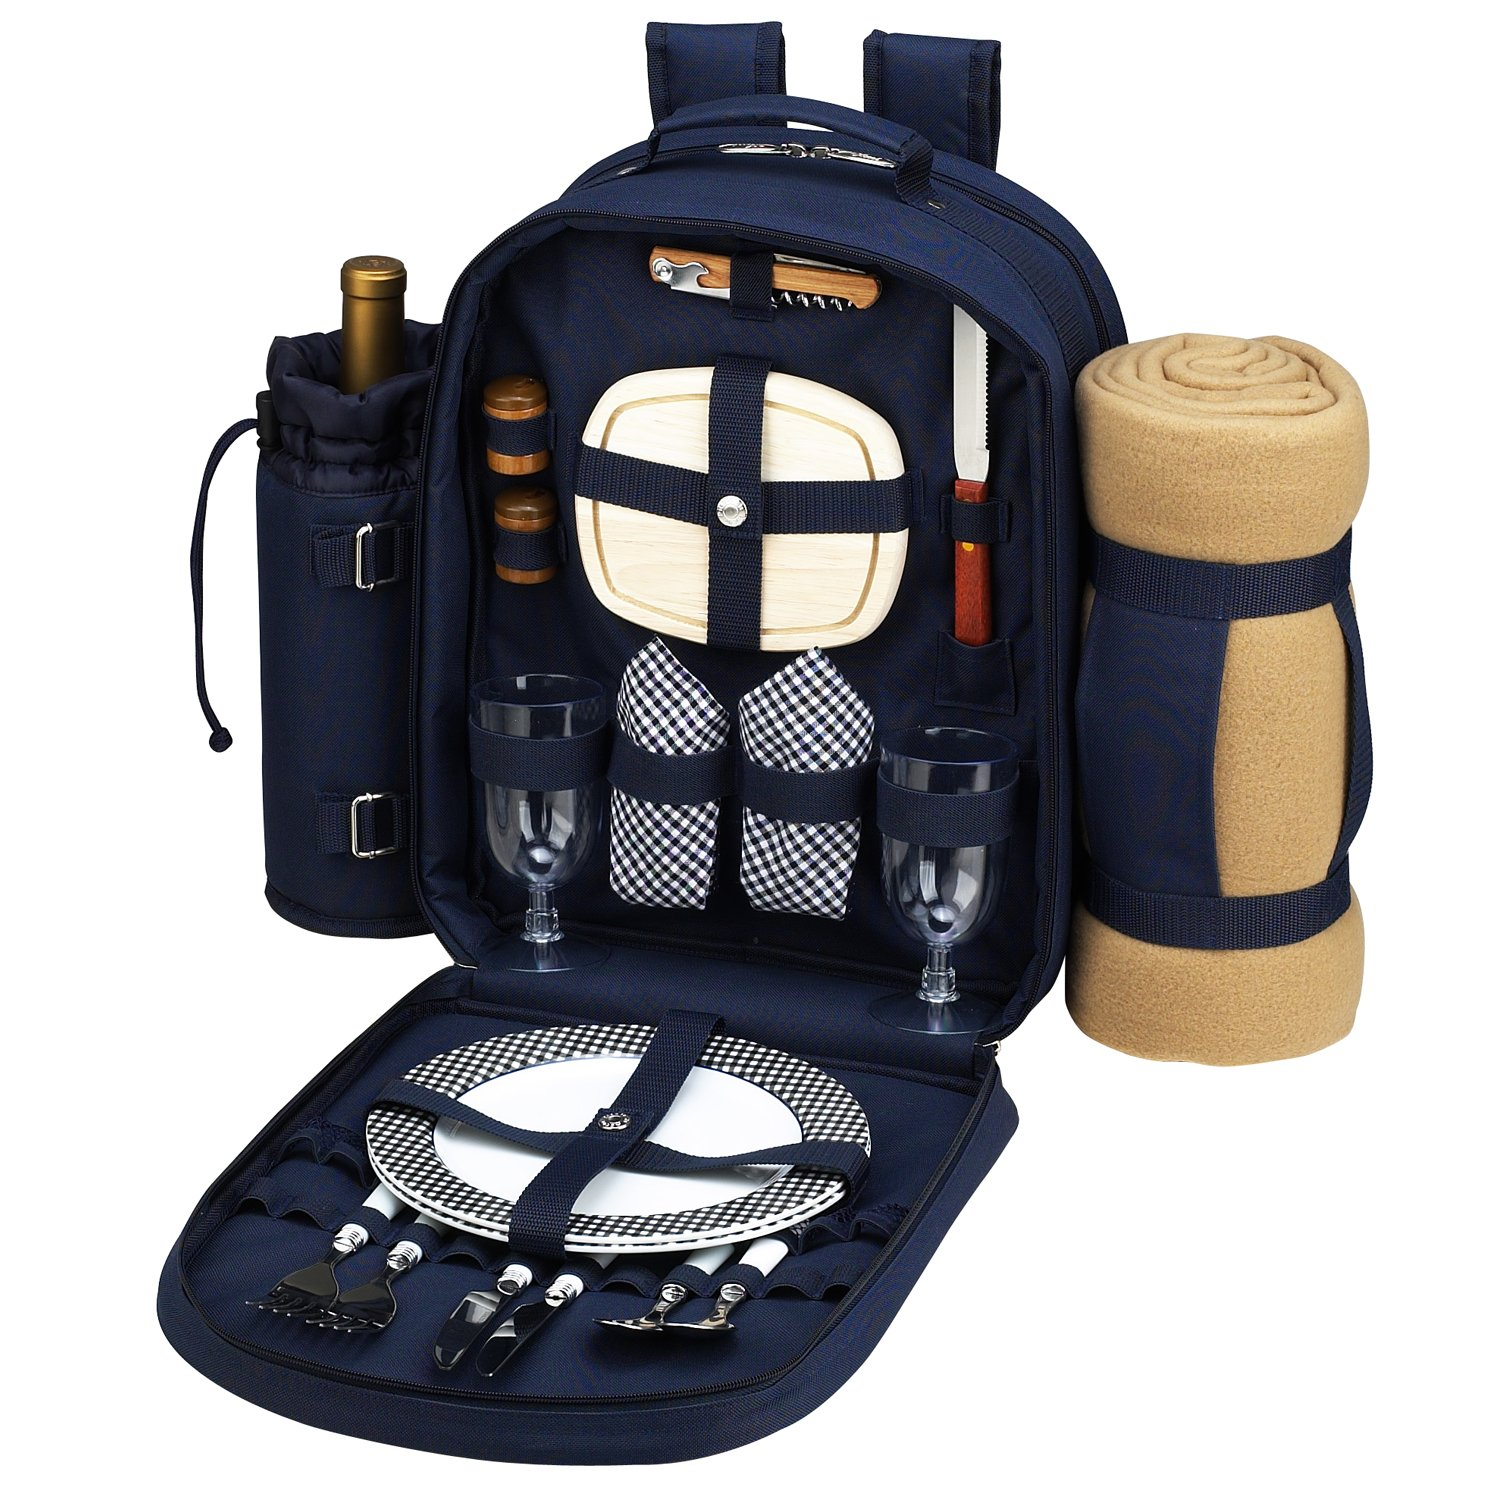 Picnic at Ascot - Deluxe Equipped 2 Person Picnic Backpack with Cooler, Insulated Wine Holder & Blanket - Navy